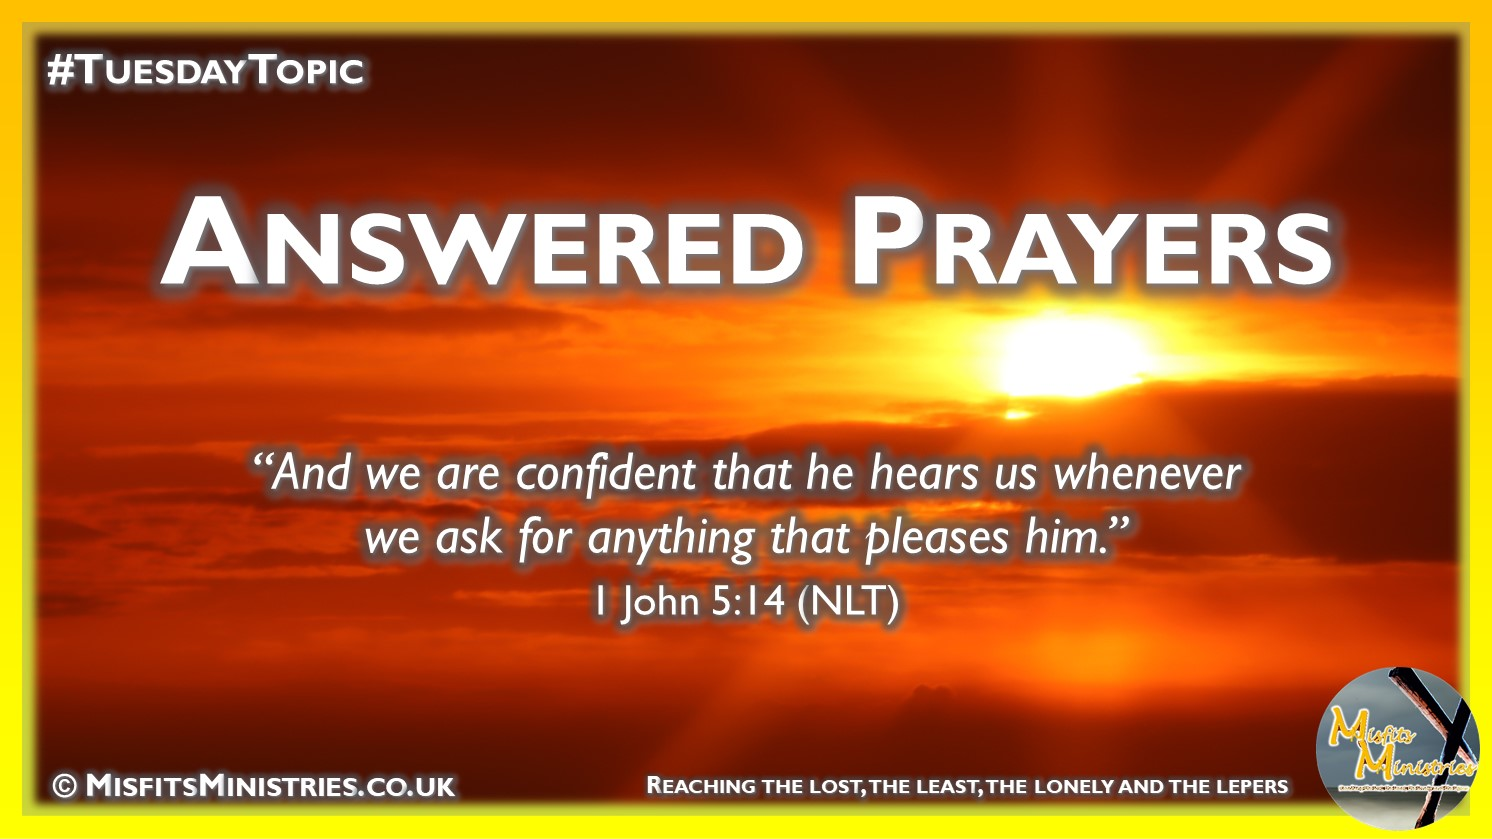 Tuesday Topic - Answered Prayers